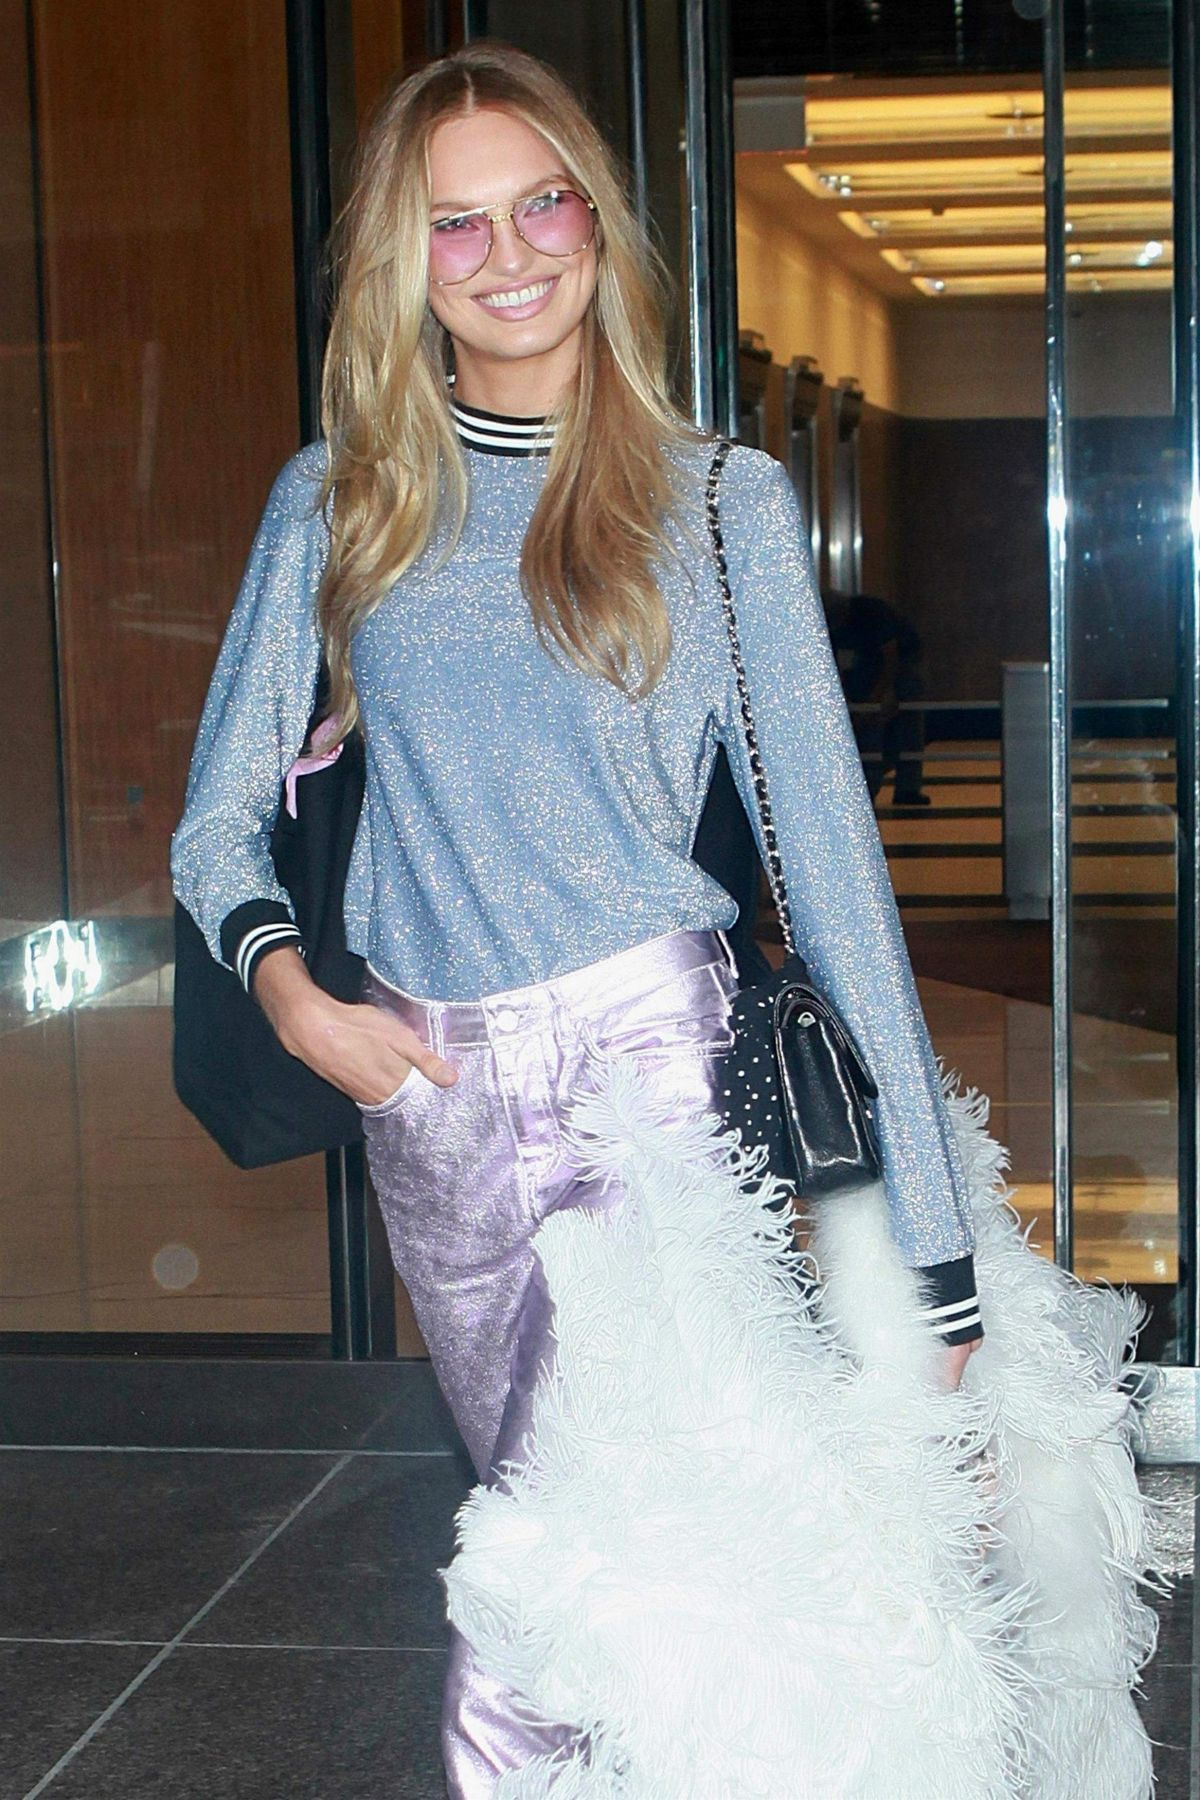 ROMEE STRIJD Arrives at Victoria's Secret Offices in New York 08/29/2017